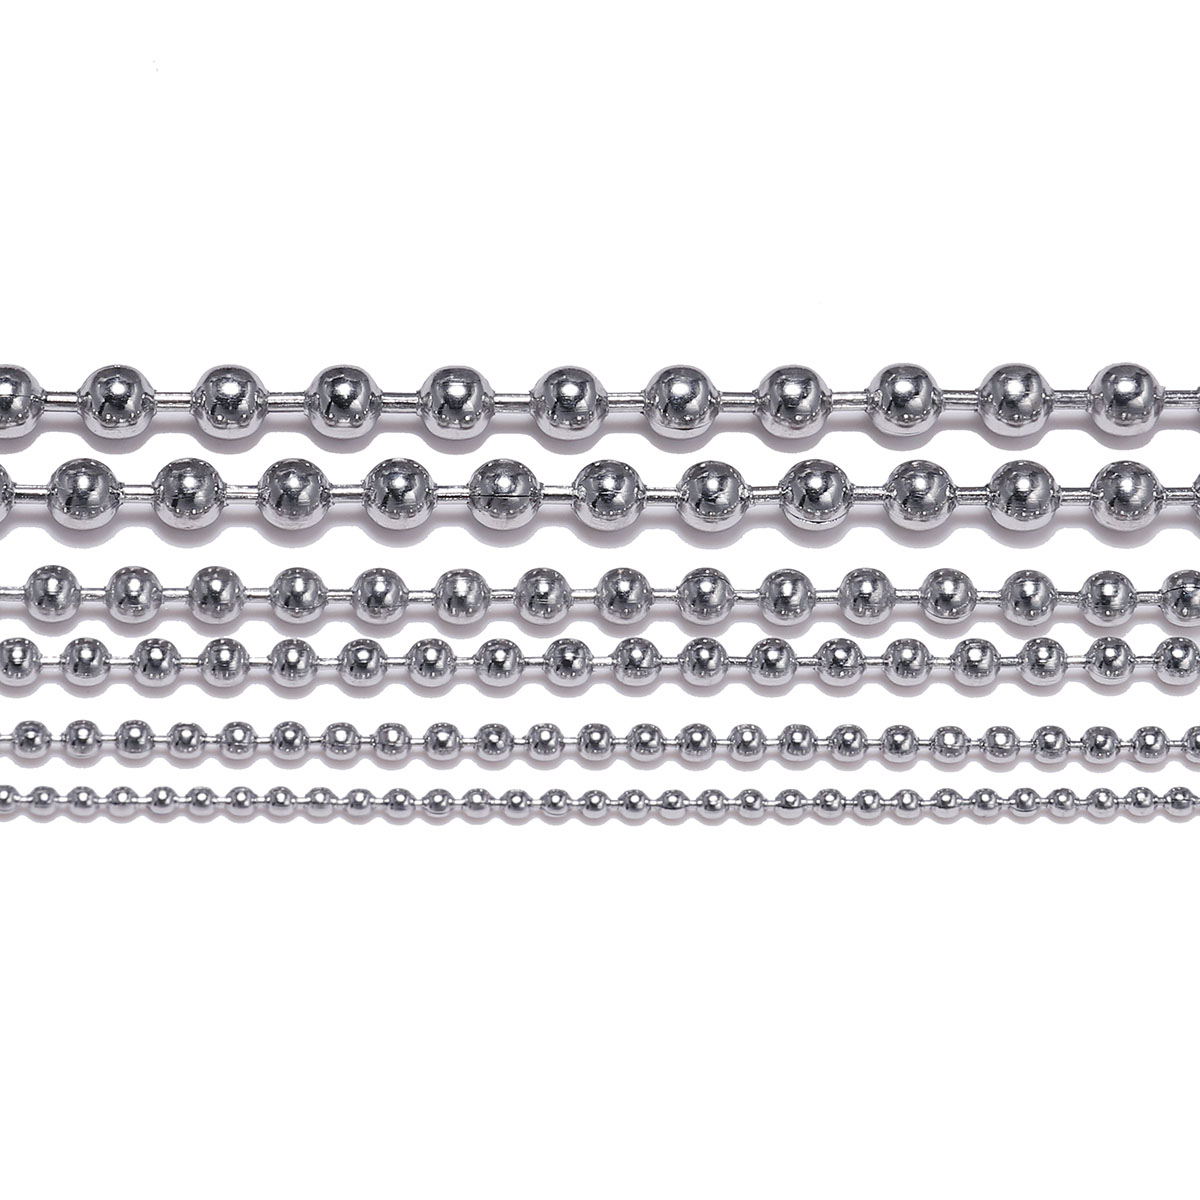 5m/lot 1.2/1.5/2.0/2.5/3.0/3.2mm Beaded Ball Stainless Steel Bulk Ball Bead Chains For DIY Necklaces Jewelry Making Accessories